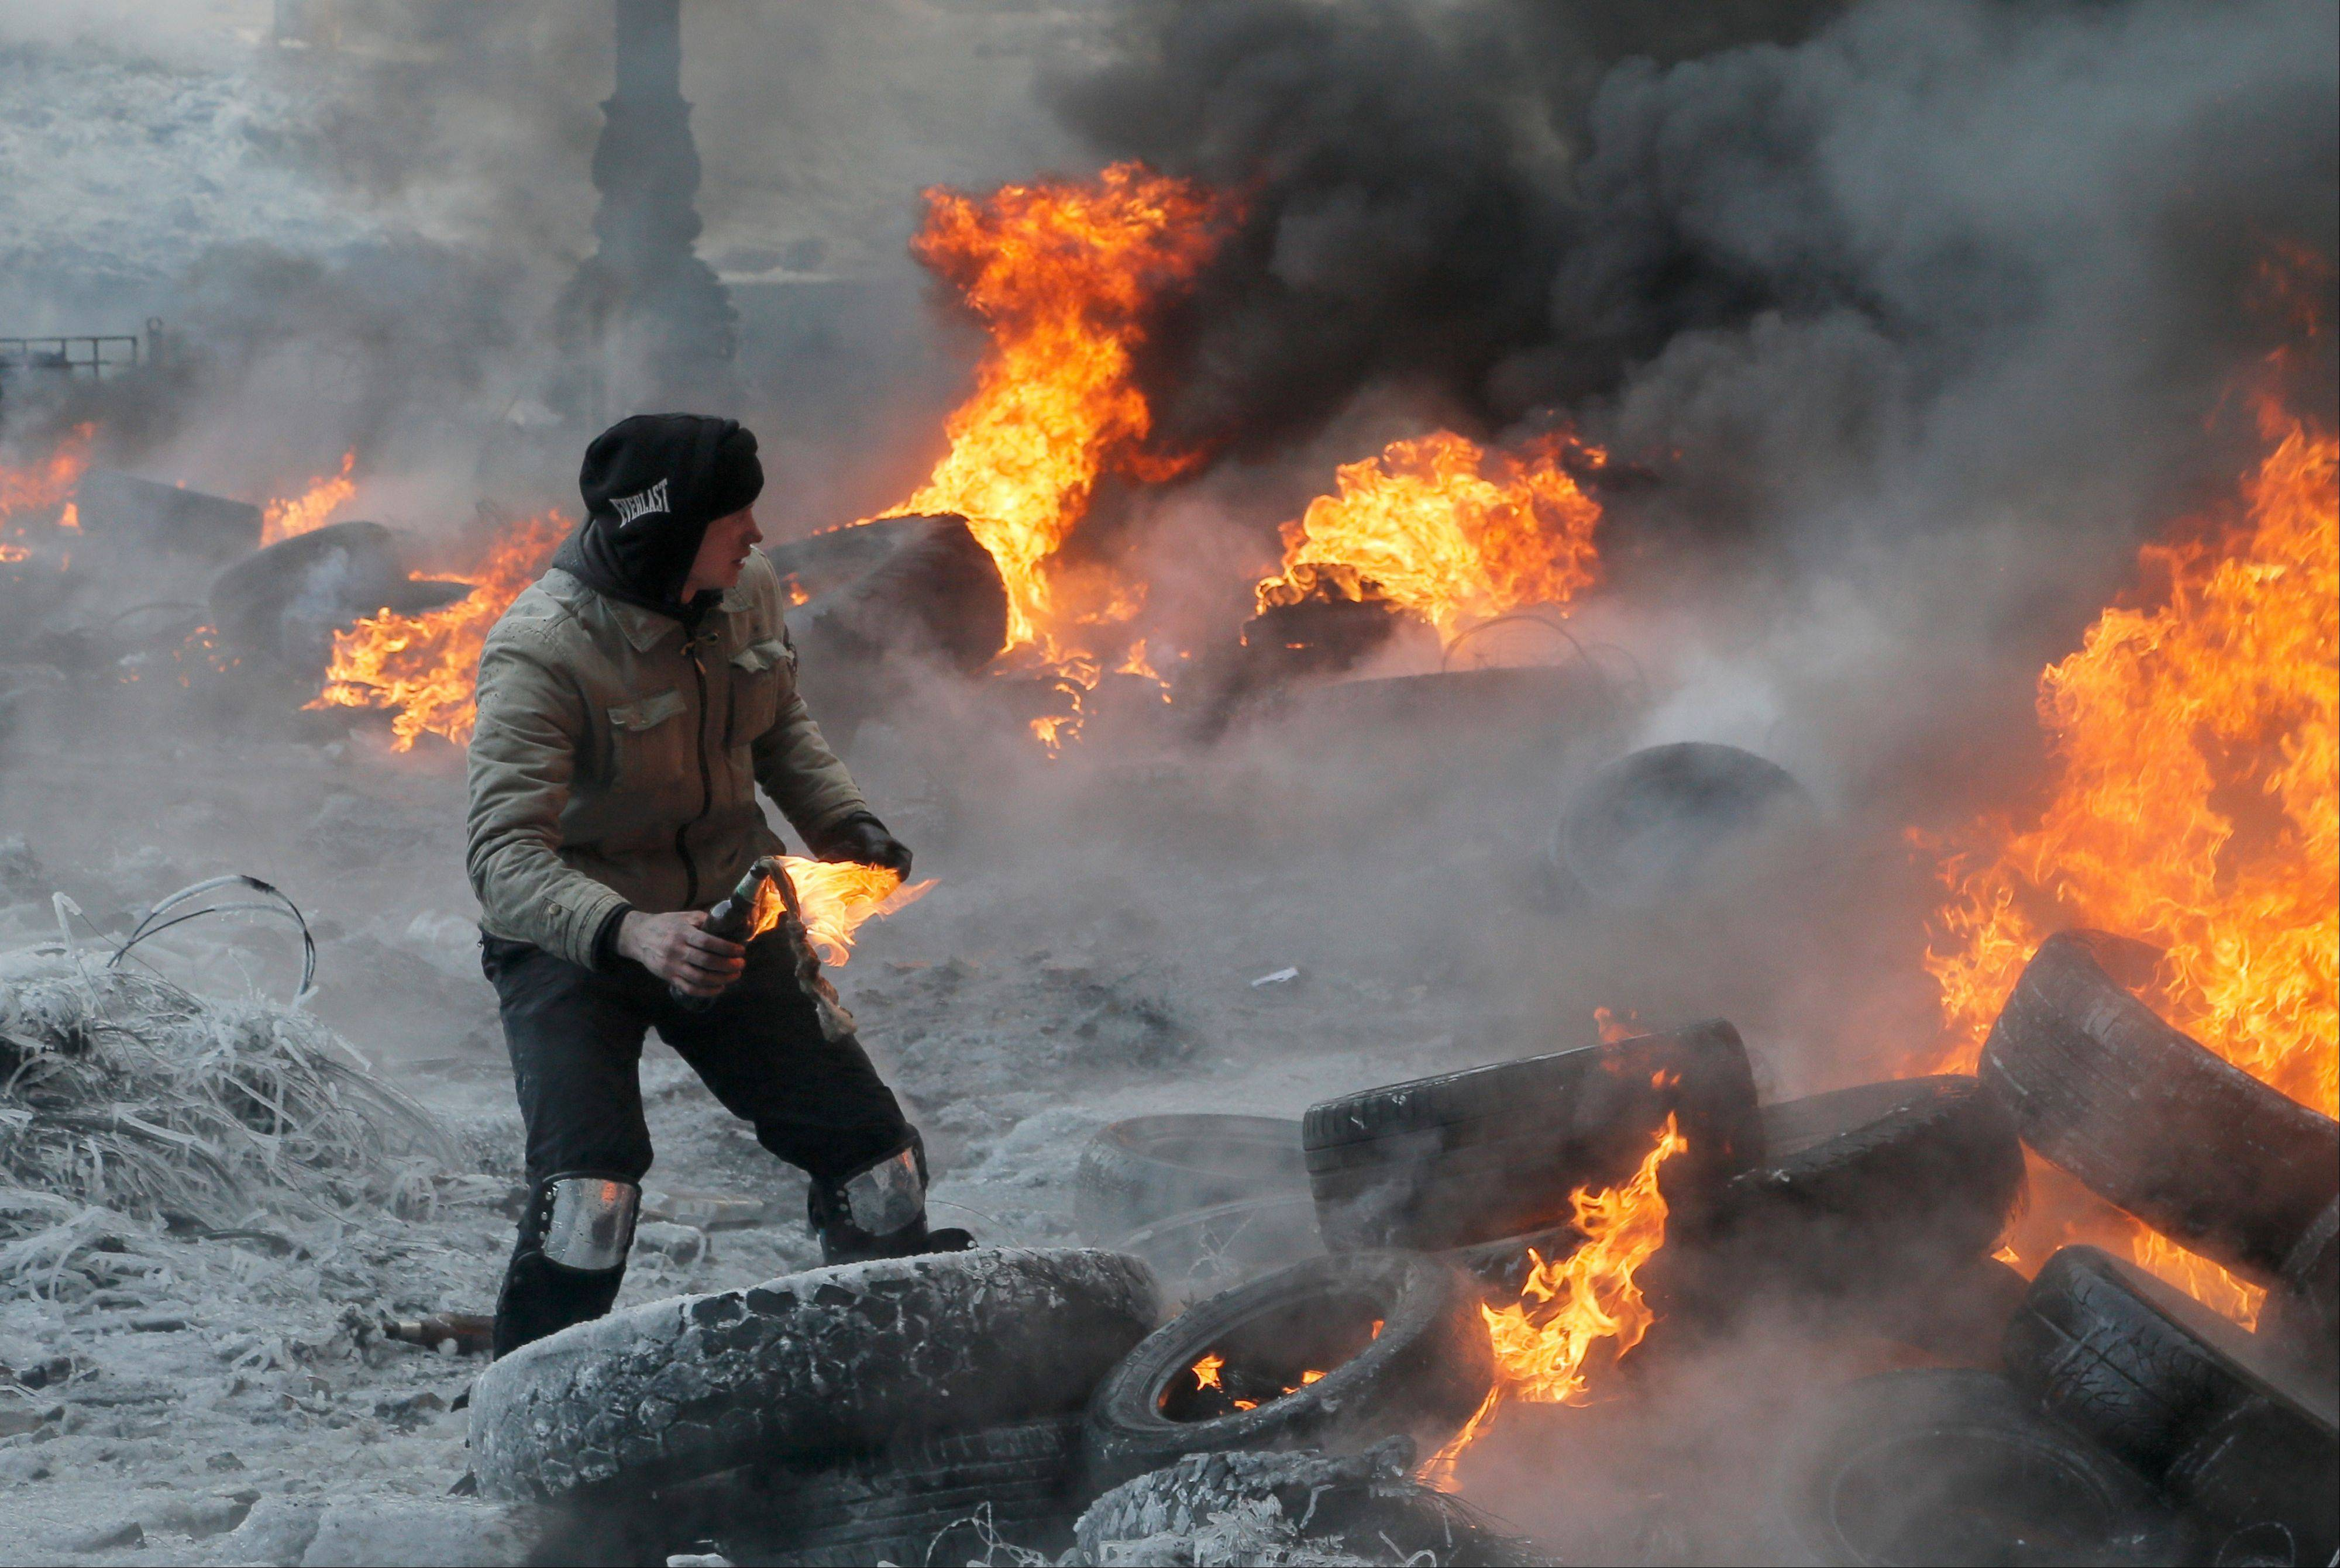 Associated PressA protester throws a Molotov cocktail towards riot police.